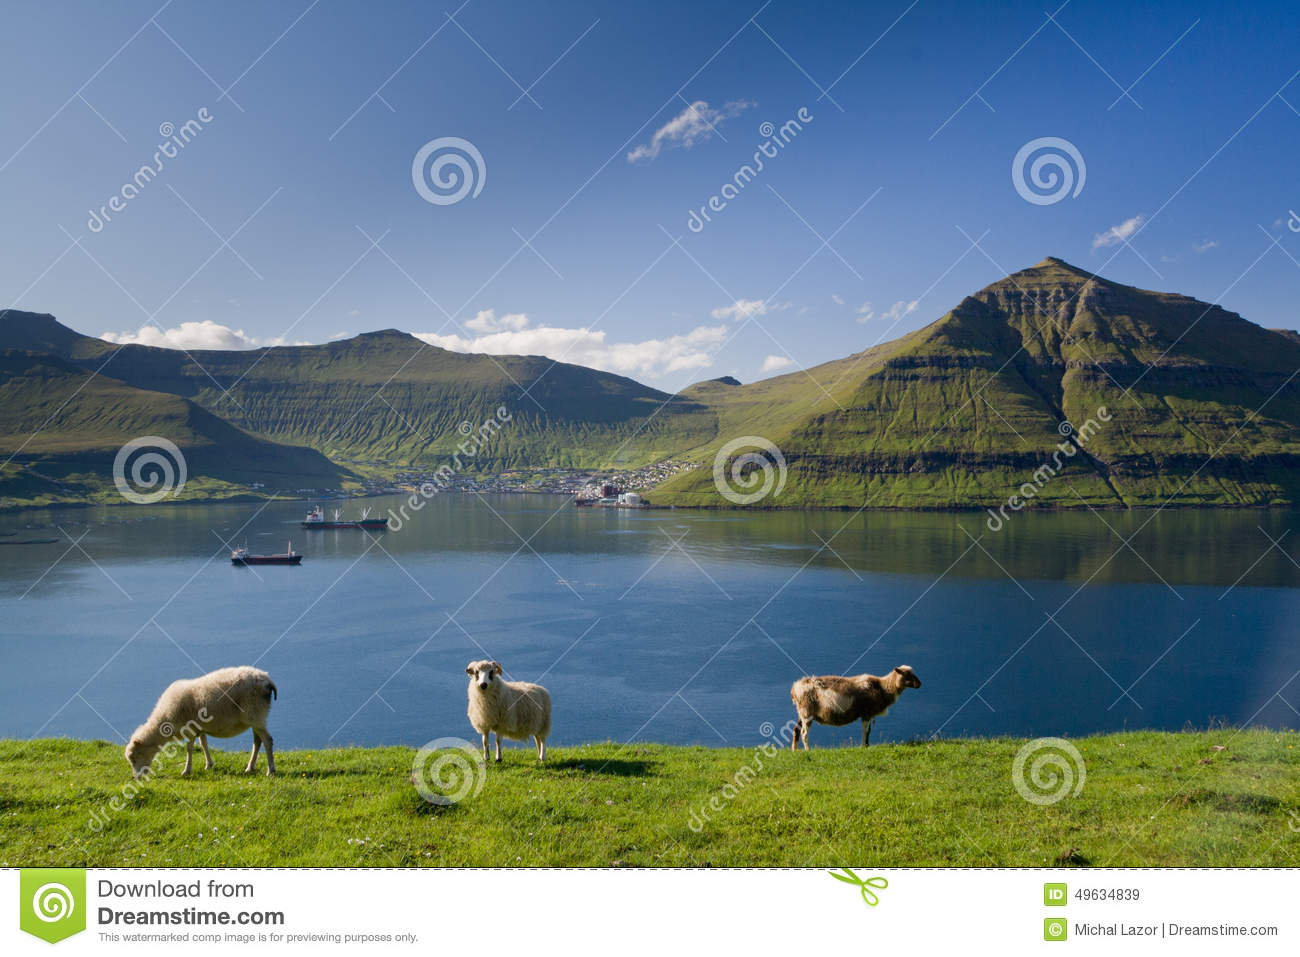 Musical Clipart Oklahoma besides Happy Sun Mascot Cartoon Character in addition Fuglafjordur Faroe Islands Sheep Grazing in addition Summer Night Outdoor Fair Vector Illustration People Going To also Kisscc Ancient Greece Crop Agriculture Farm Field Farm B E A F C. on summer farm clipart